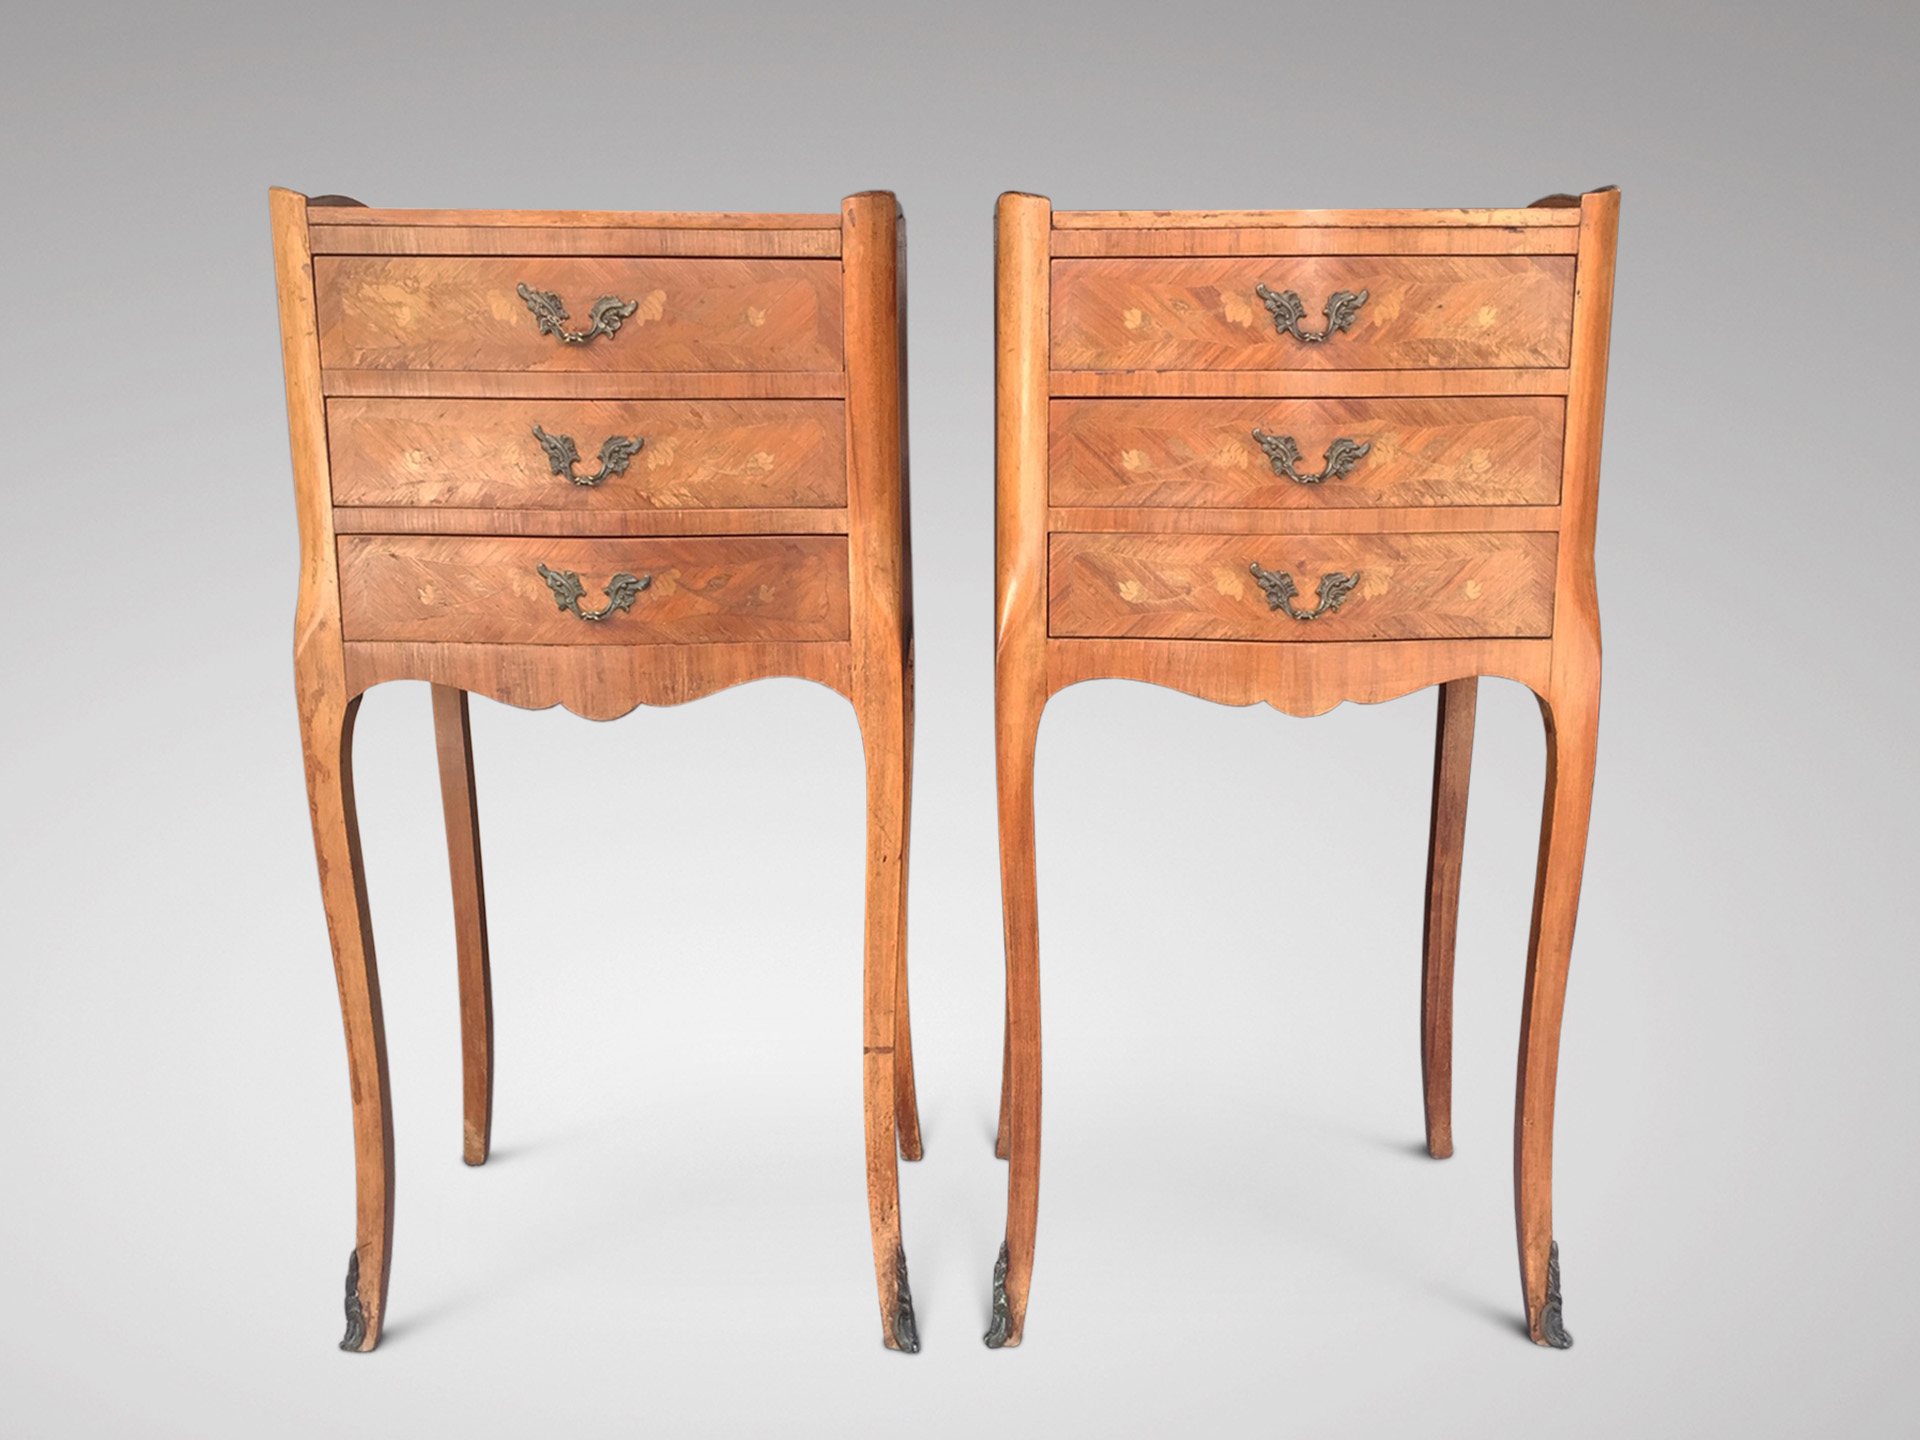 SOLD/PAIR OF FRENCH WALNUT MARQUETRY BEDSIDE TABLES